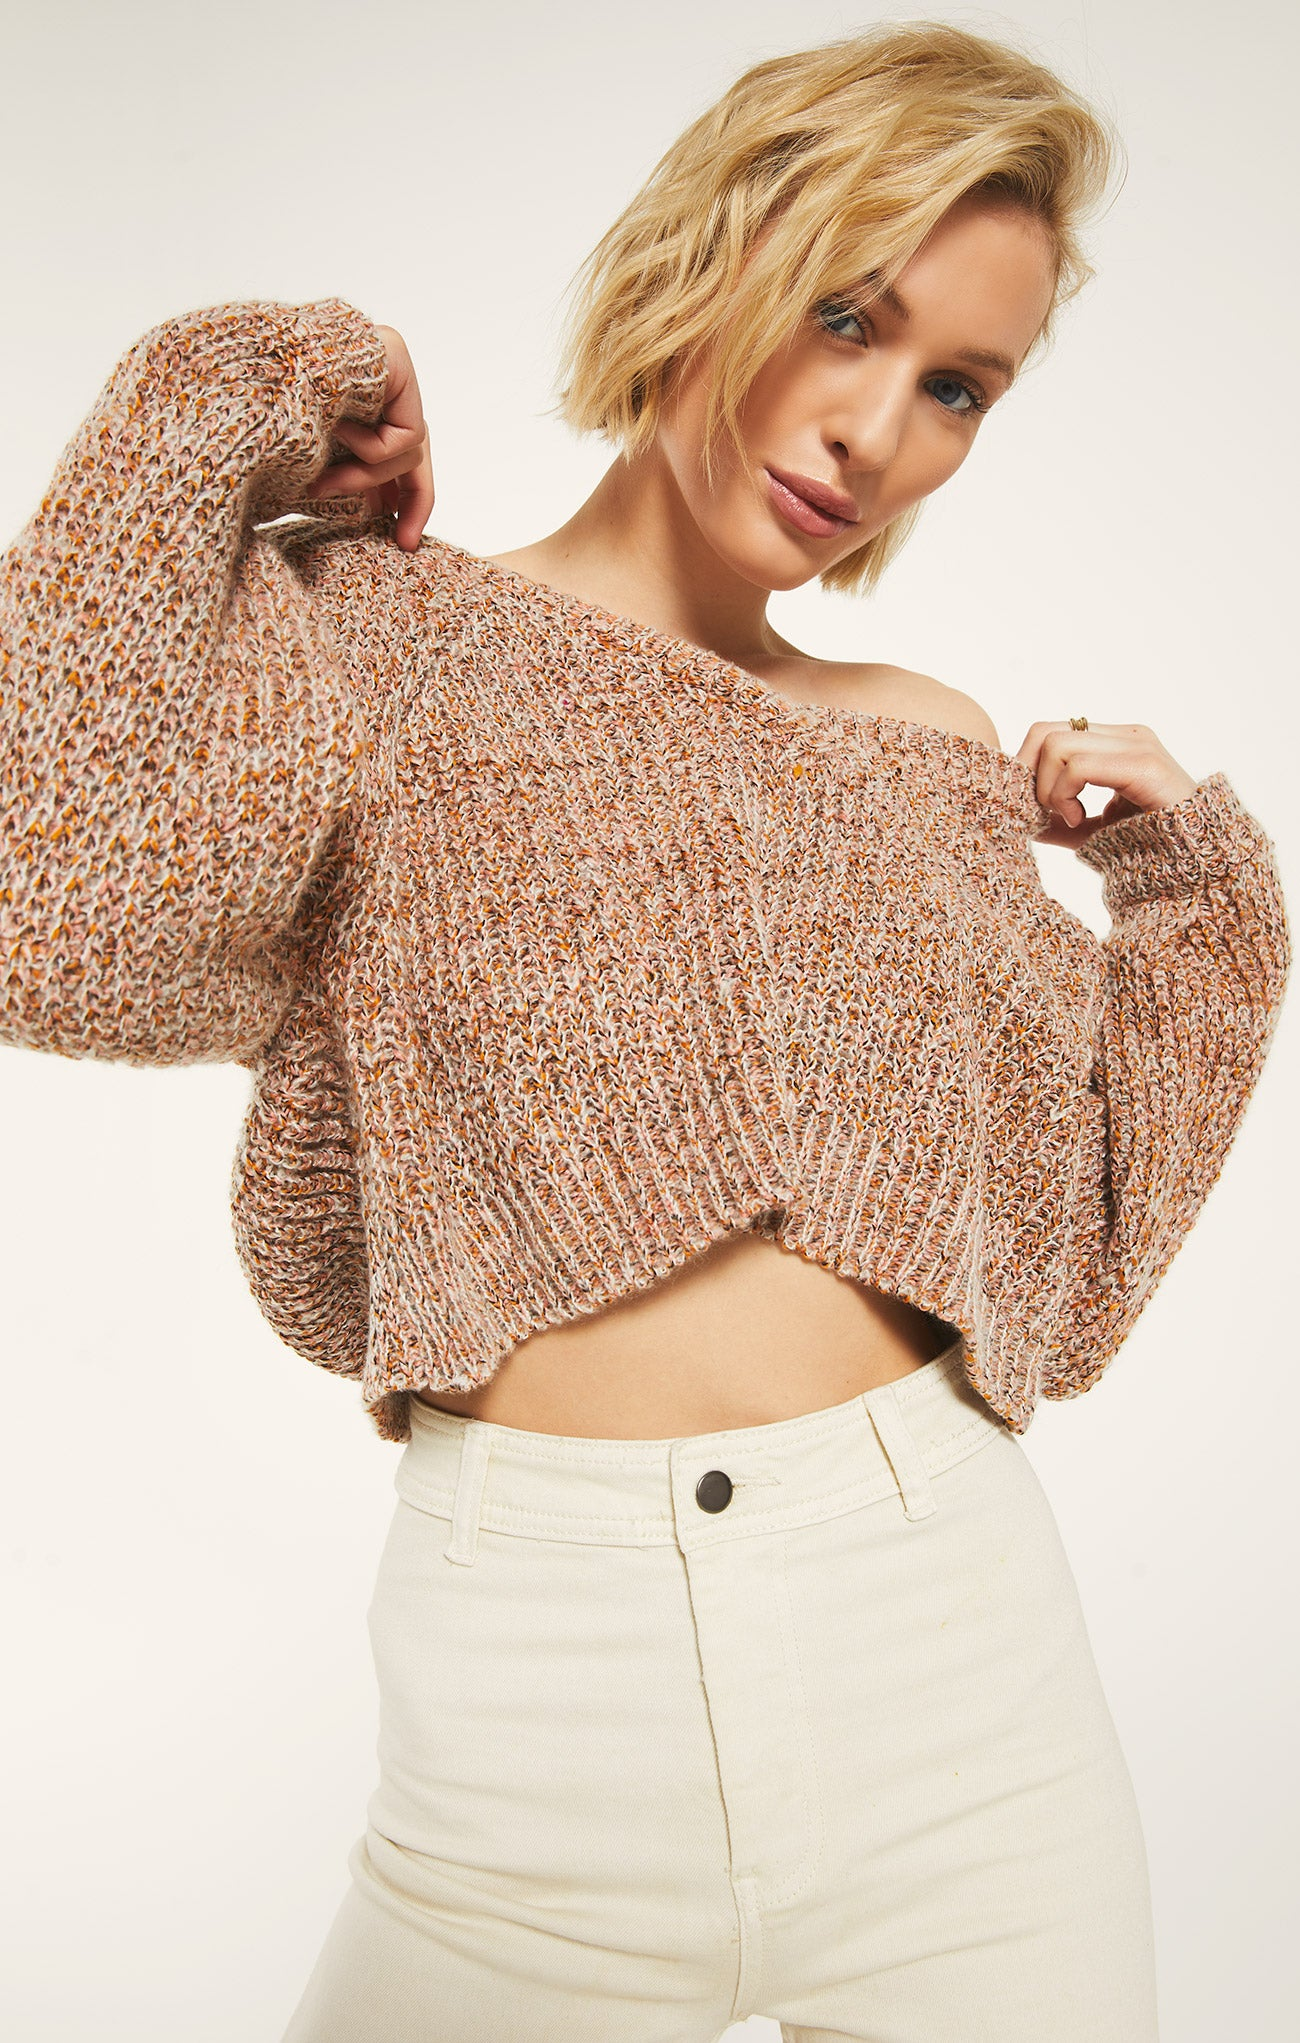 Sweaters Rathaus Sweater by Rag Poets Rathaus Sweater by Rag Poets